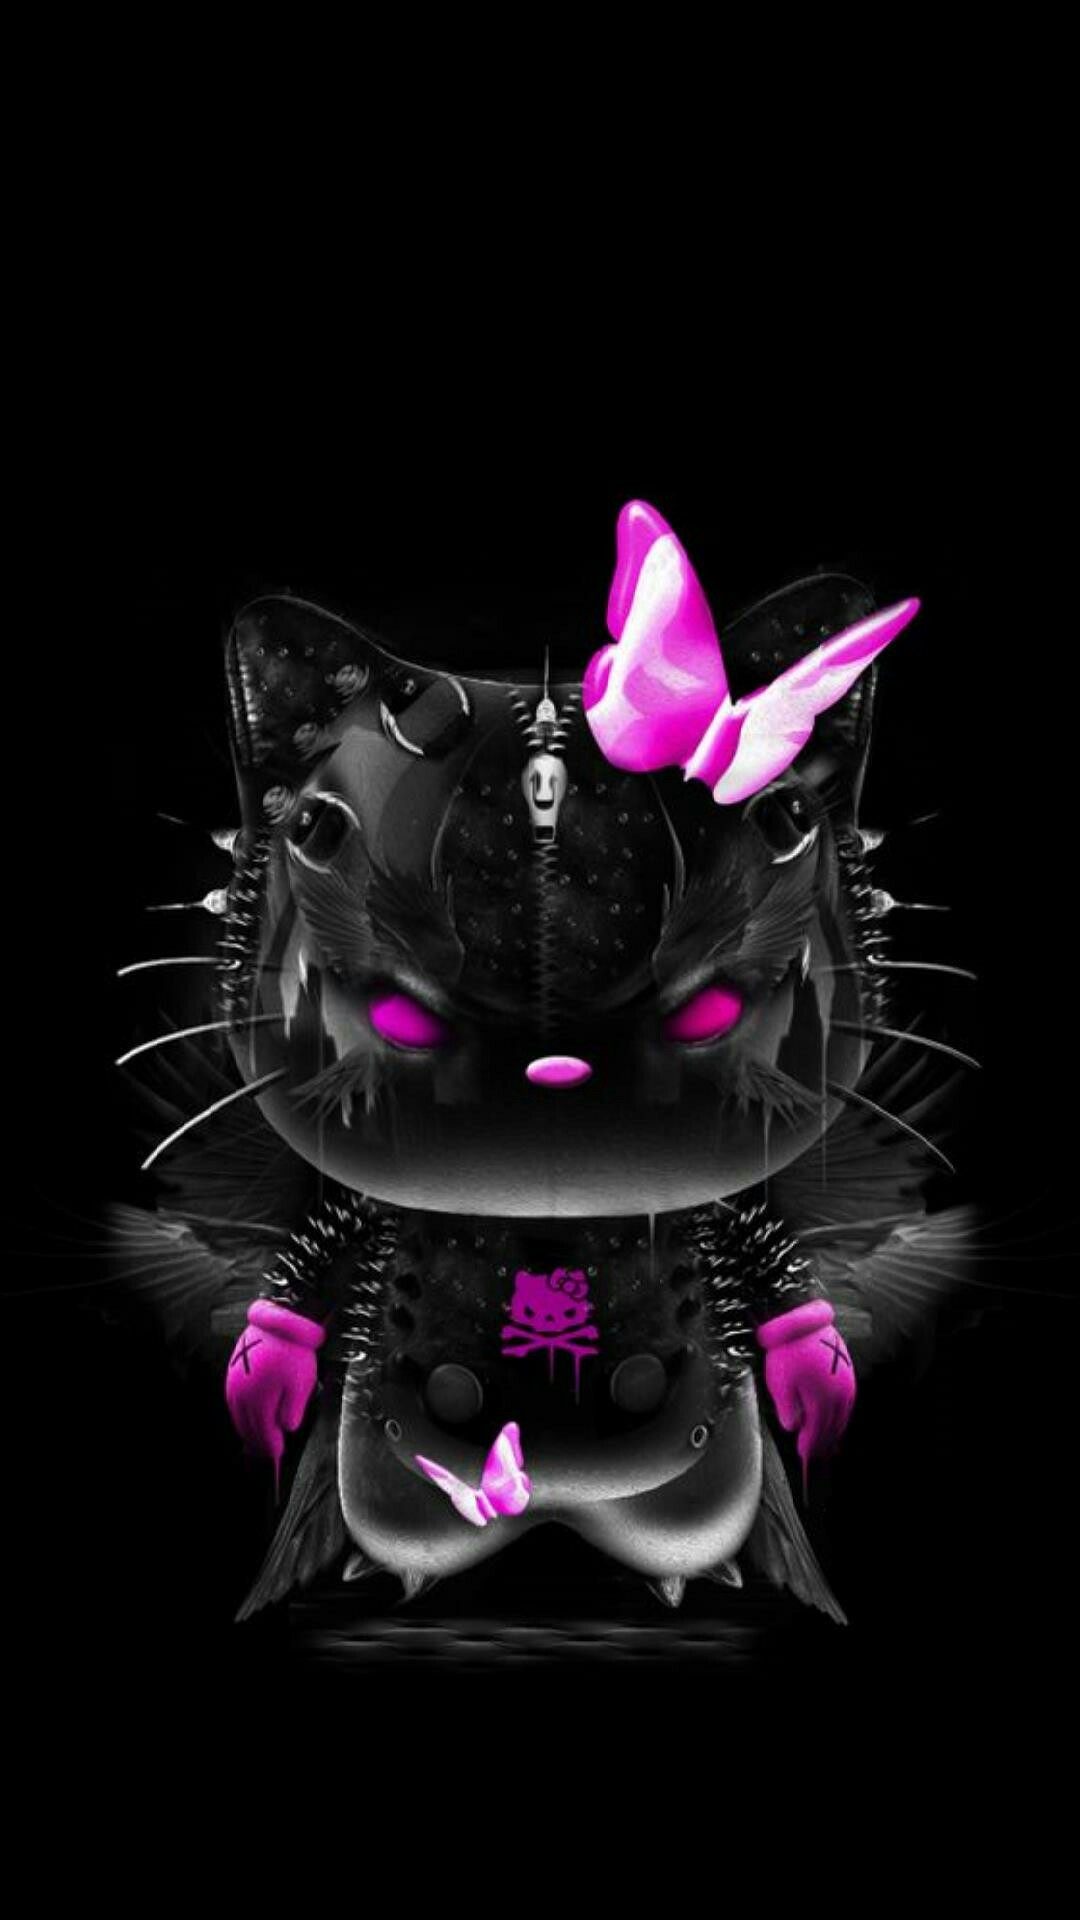 Cute Ipod Wallpapers For Walls Hello Kitty Wallpaper Pink And Black 183 ①